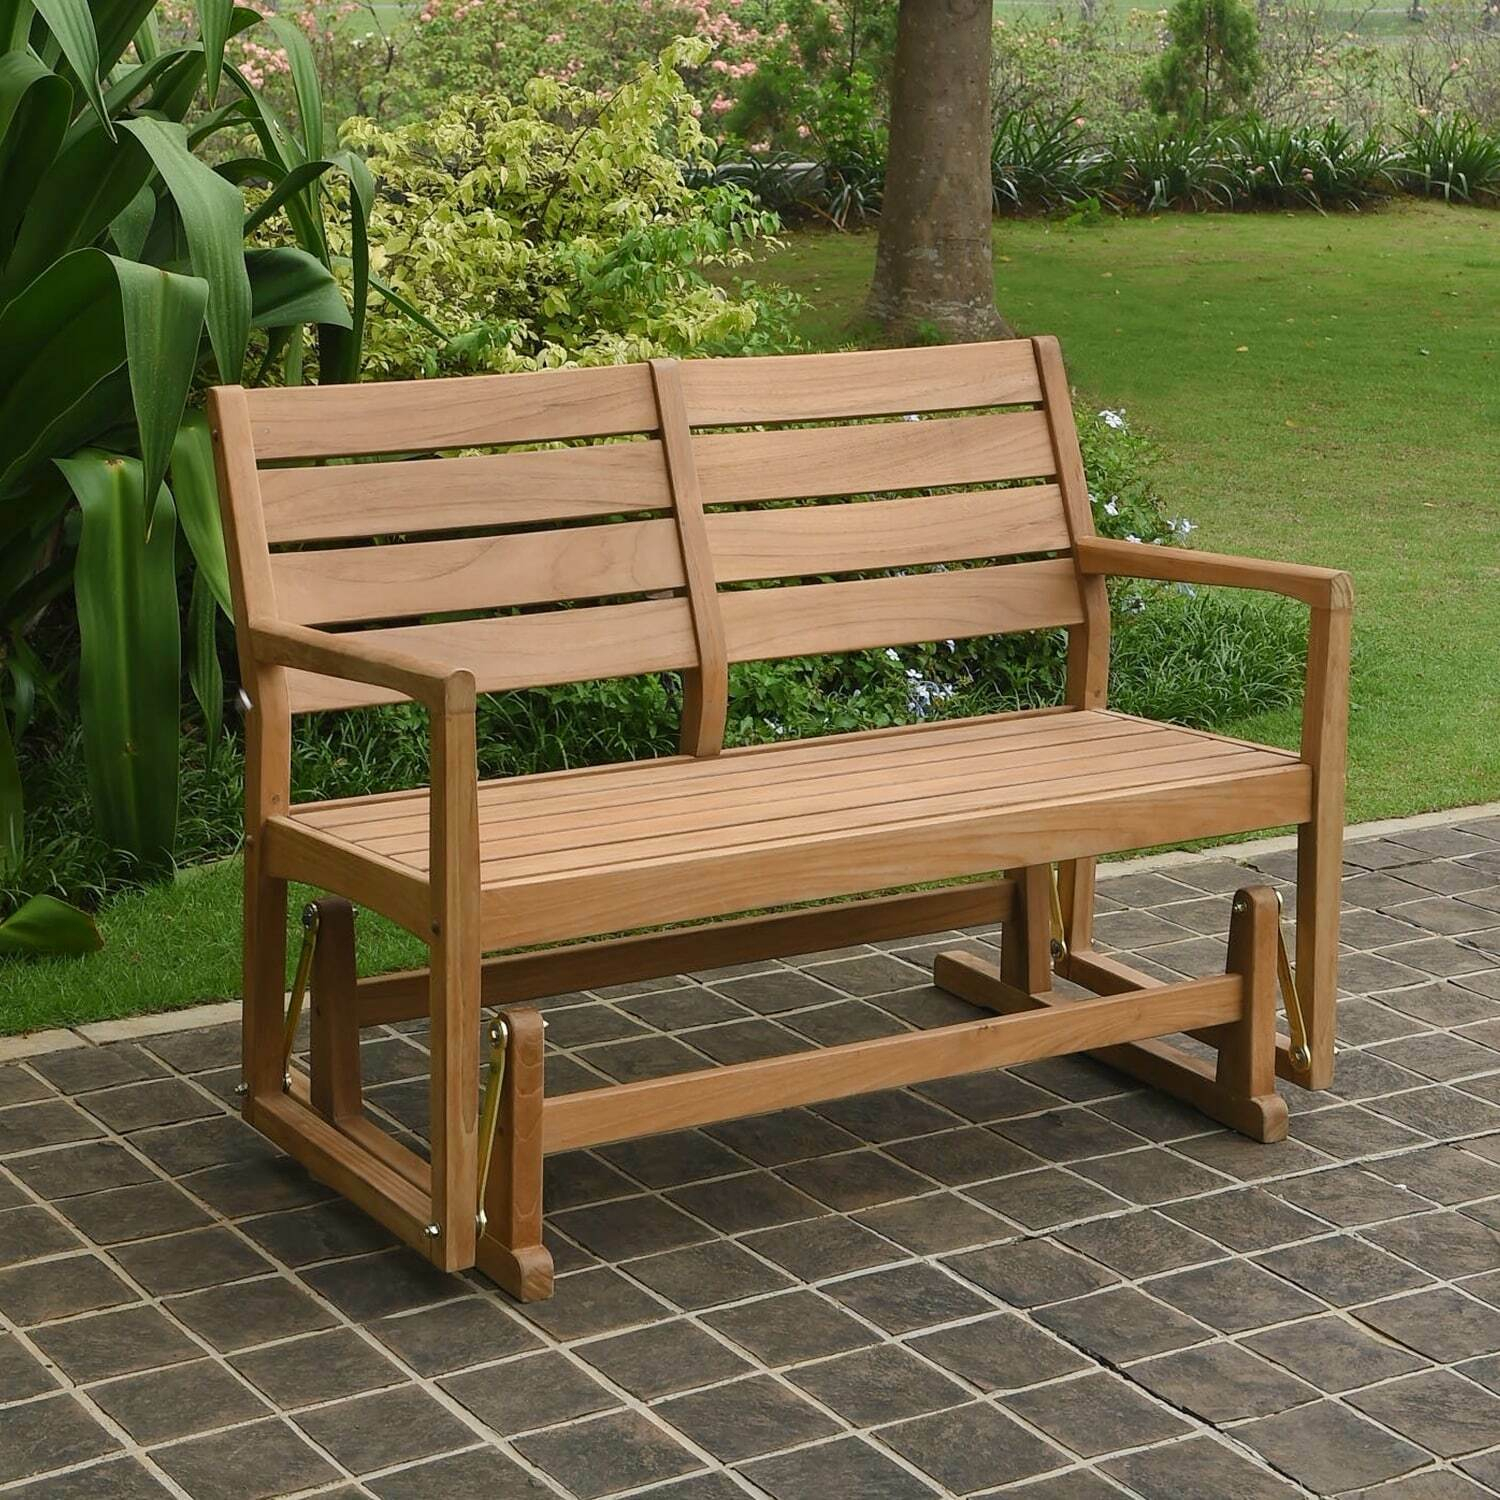 Cambridge Casual Andrea Teak Glider Bench Tan Single In Teak Outdoor Glider Benches (View 10 of 25)